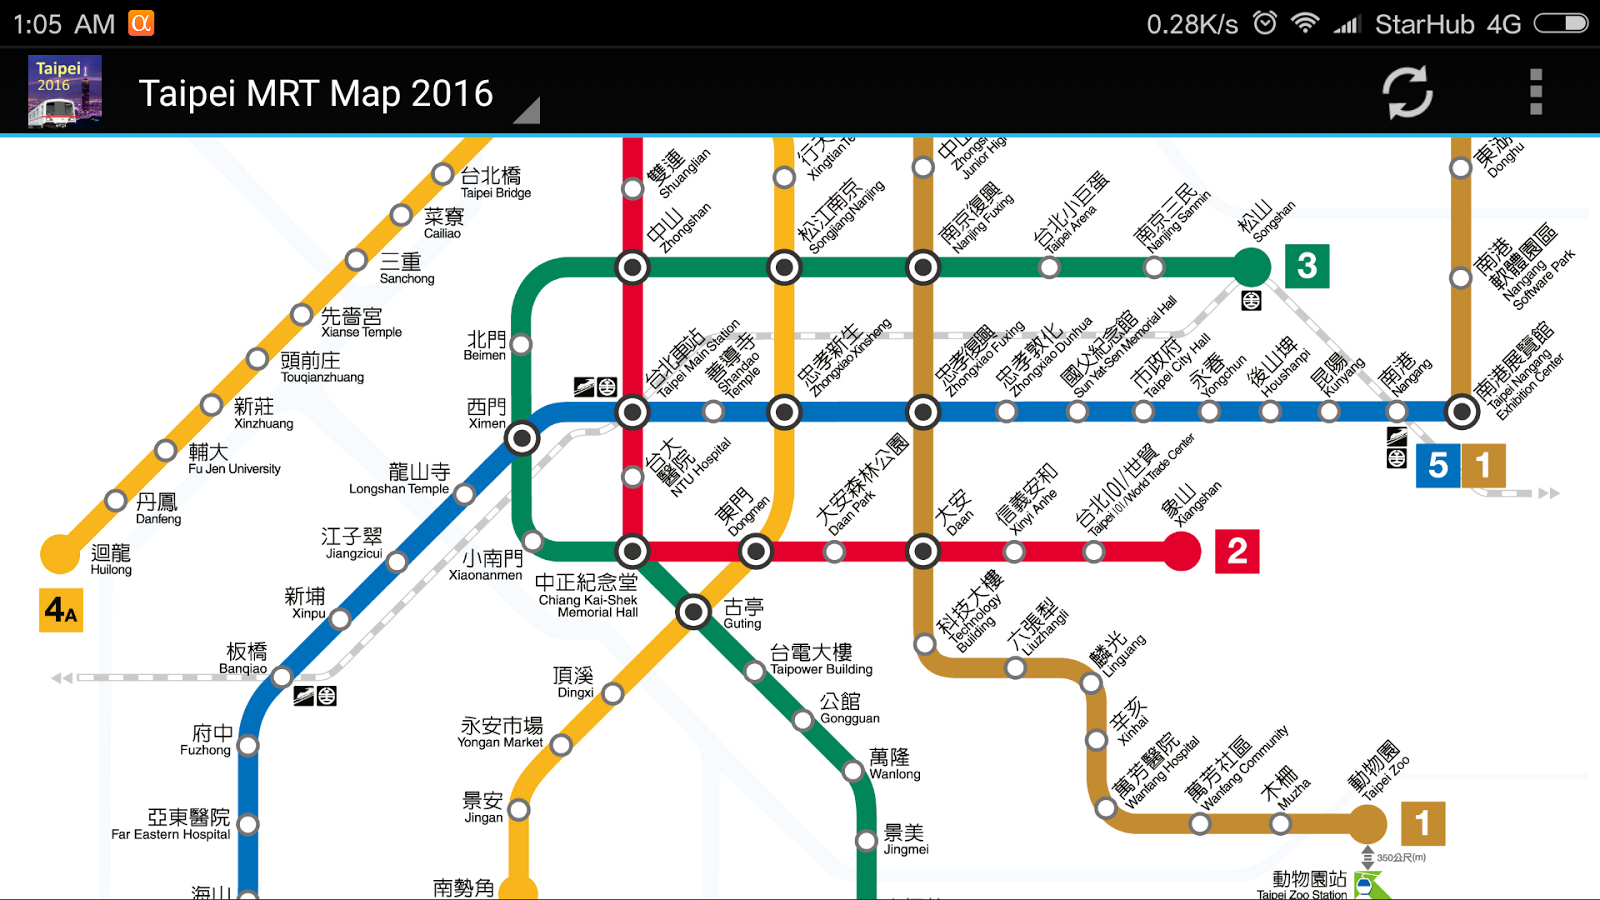 taipei mrt map 2017 taiwan android apps on google play